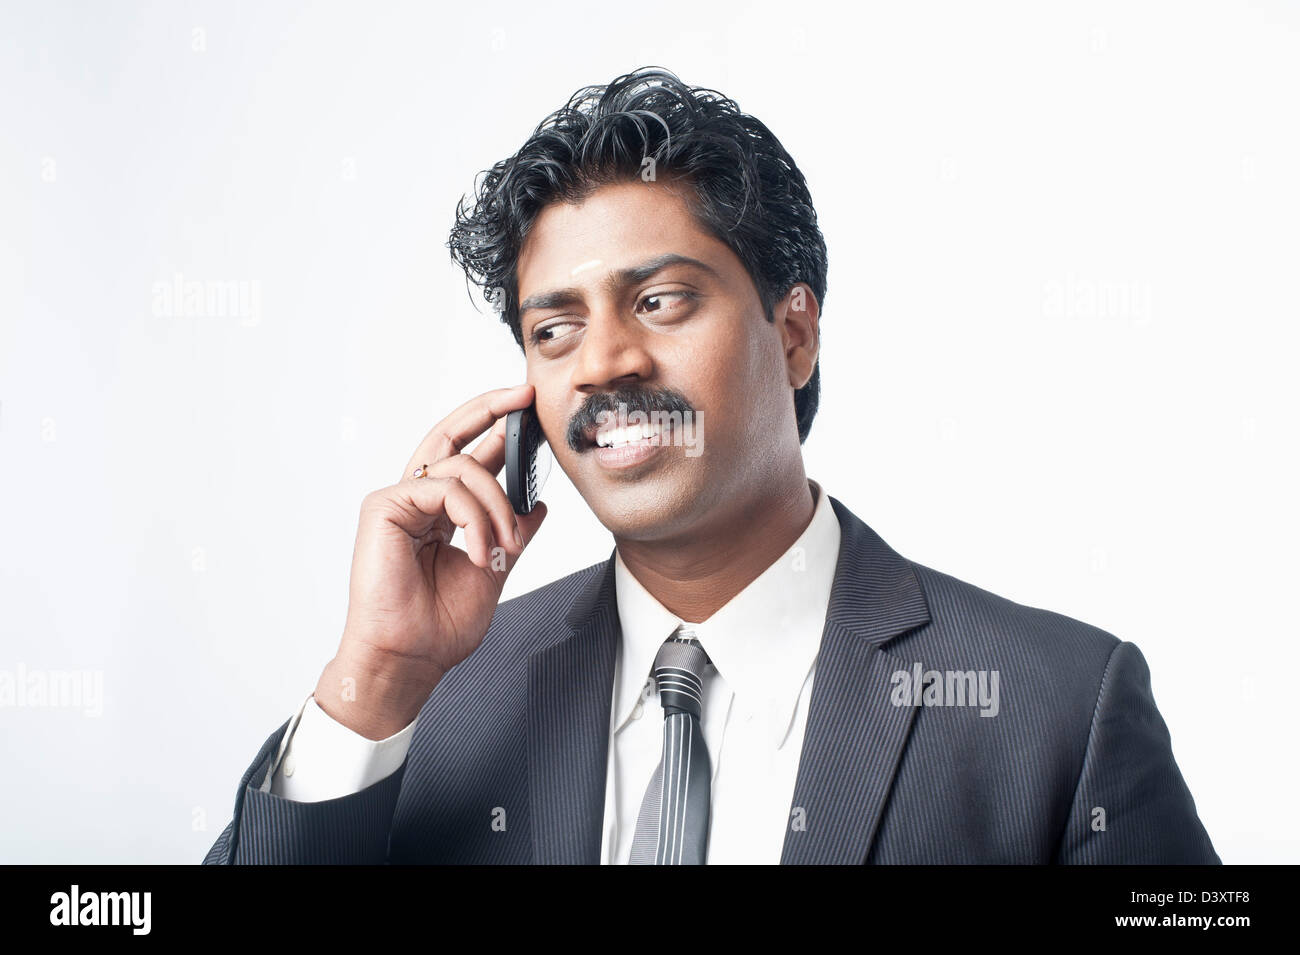 044ea9354f South Indian businessman talking on a mobile phone Stock Photo ...